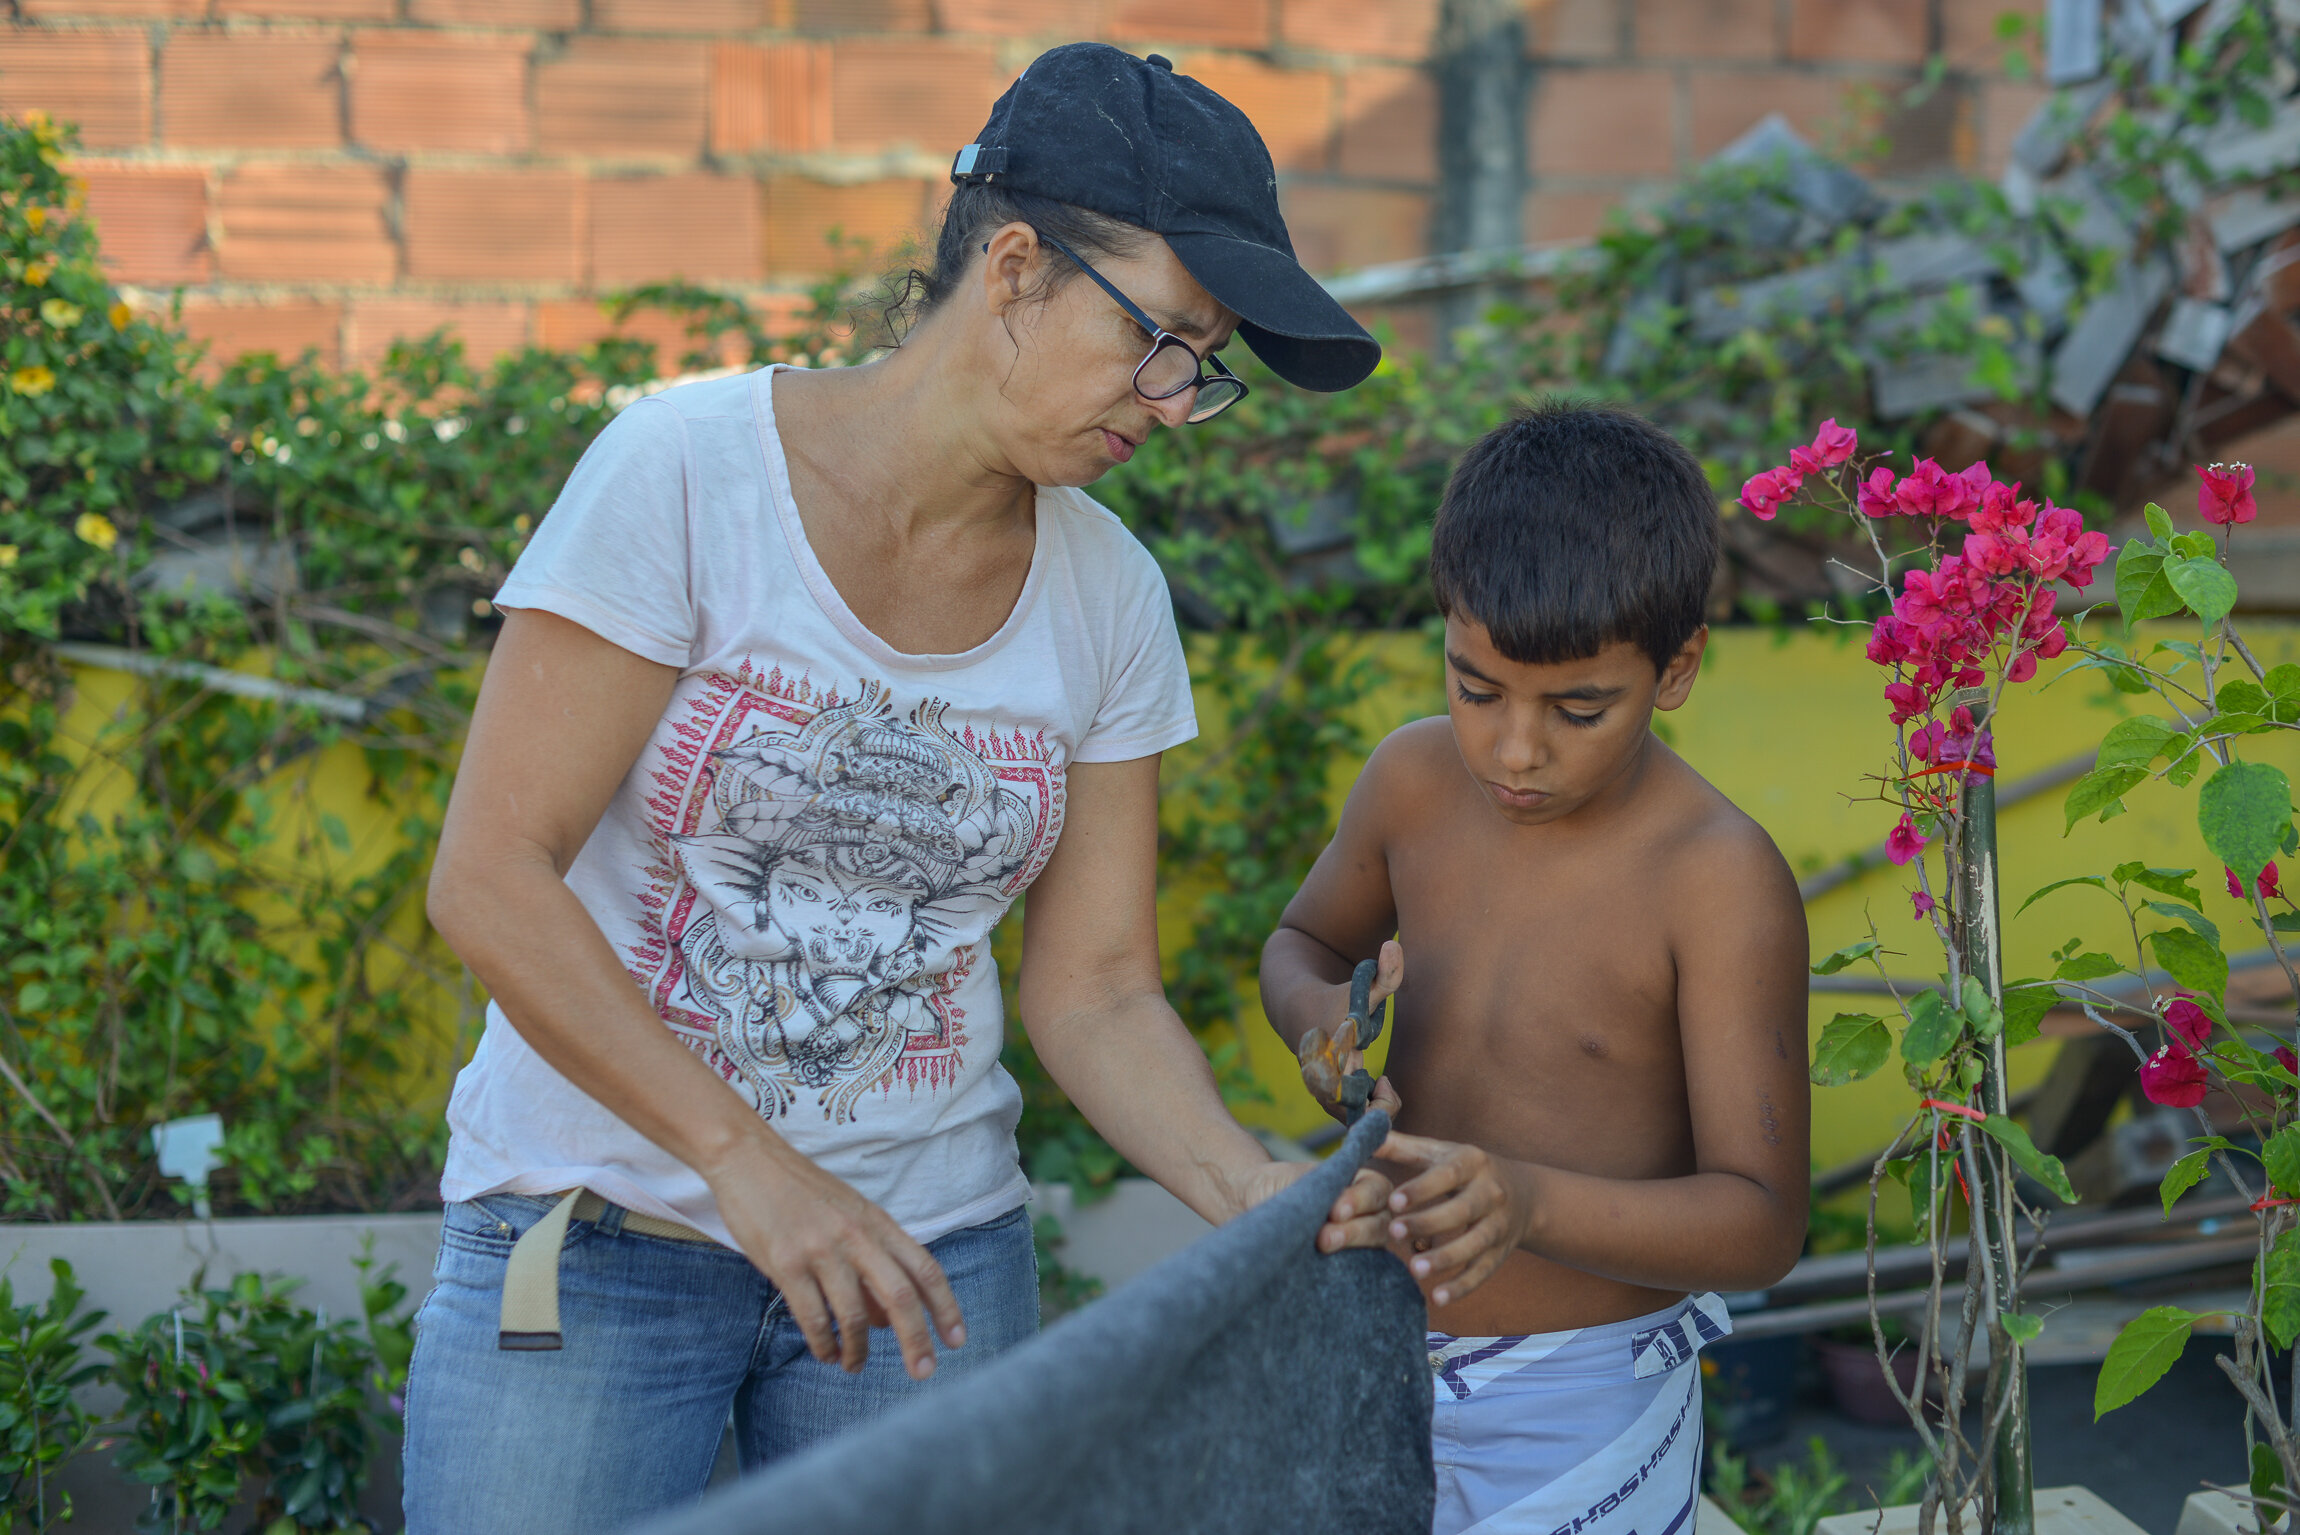 Alessandra Roque - Gardening   Alessandra Alves Roque. Professional in plants, nature and soil, herbalist and therapist. She has environmental projects for the good of the community of Providência.